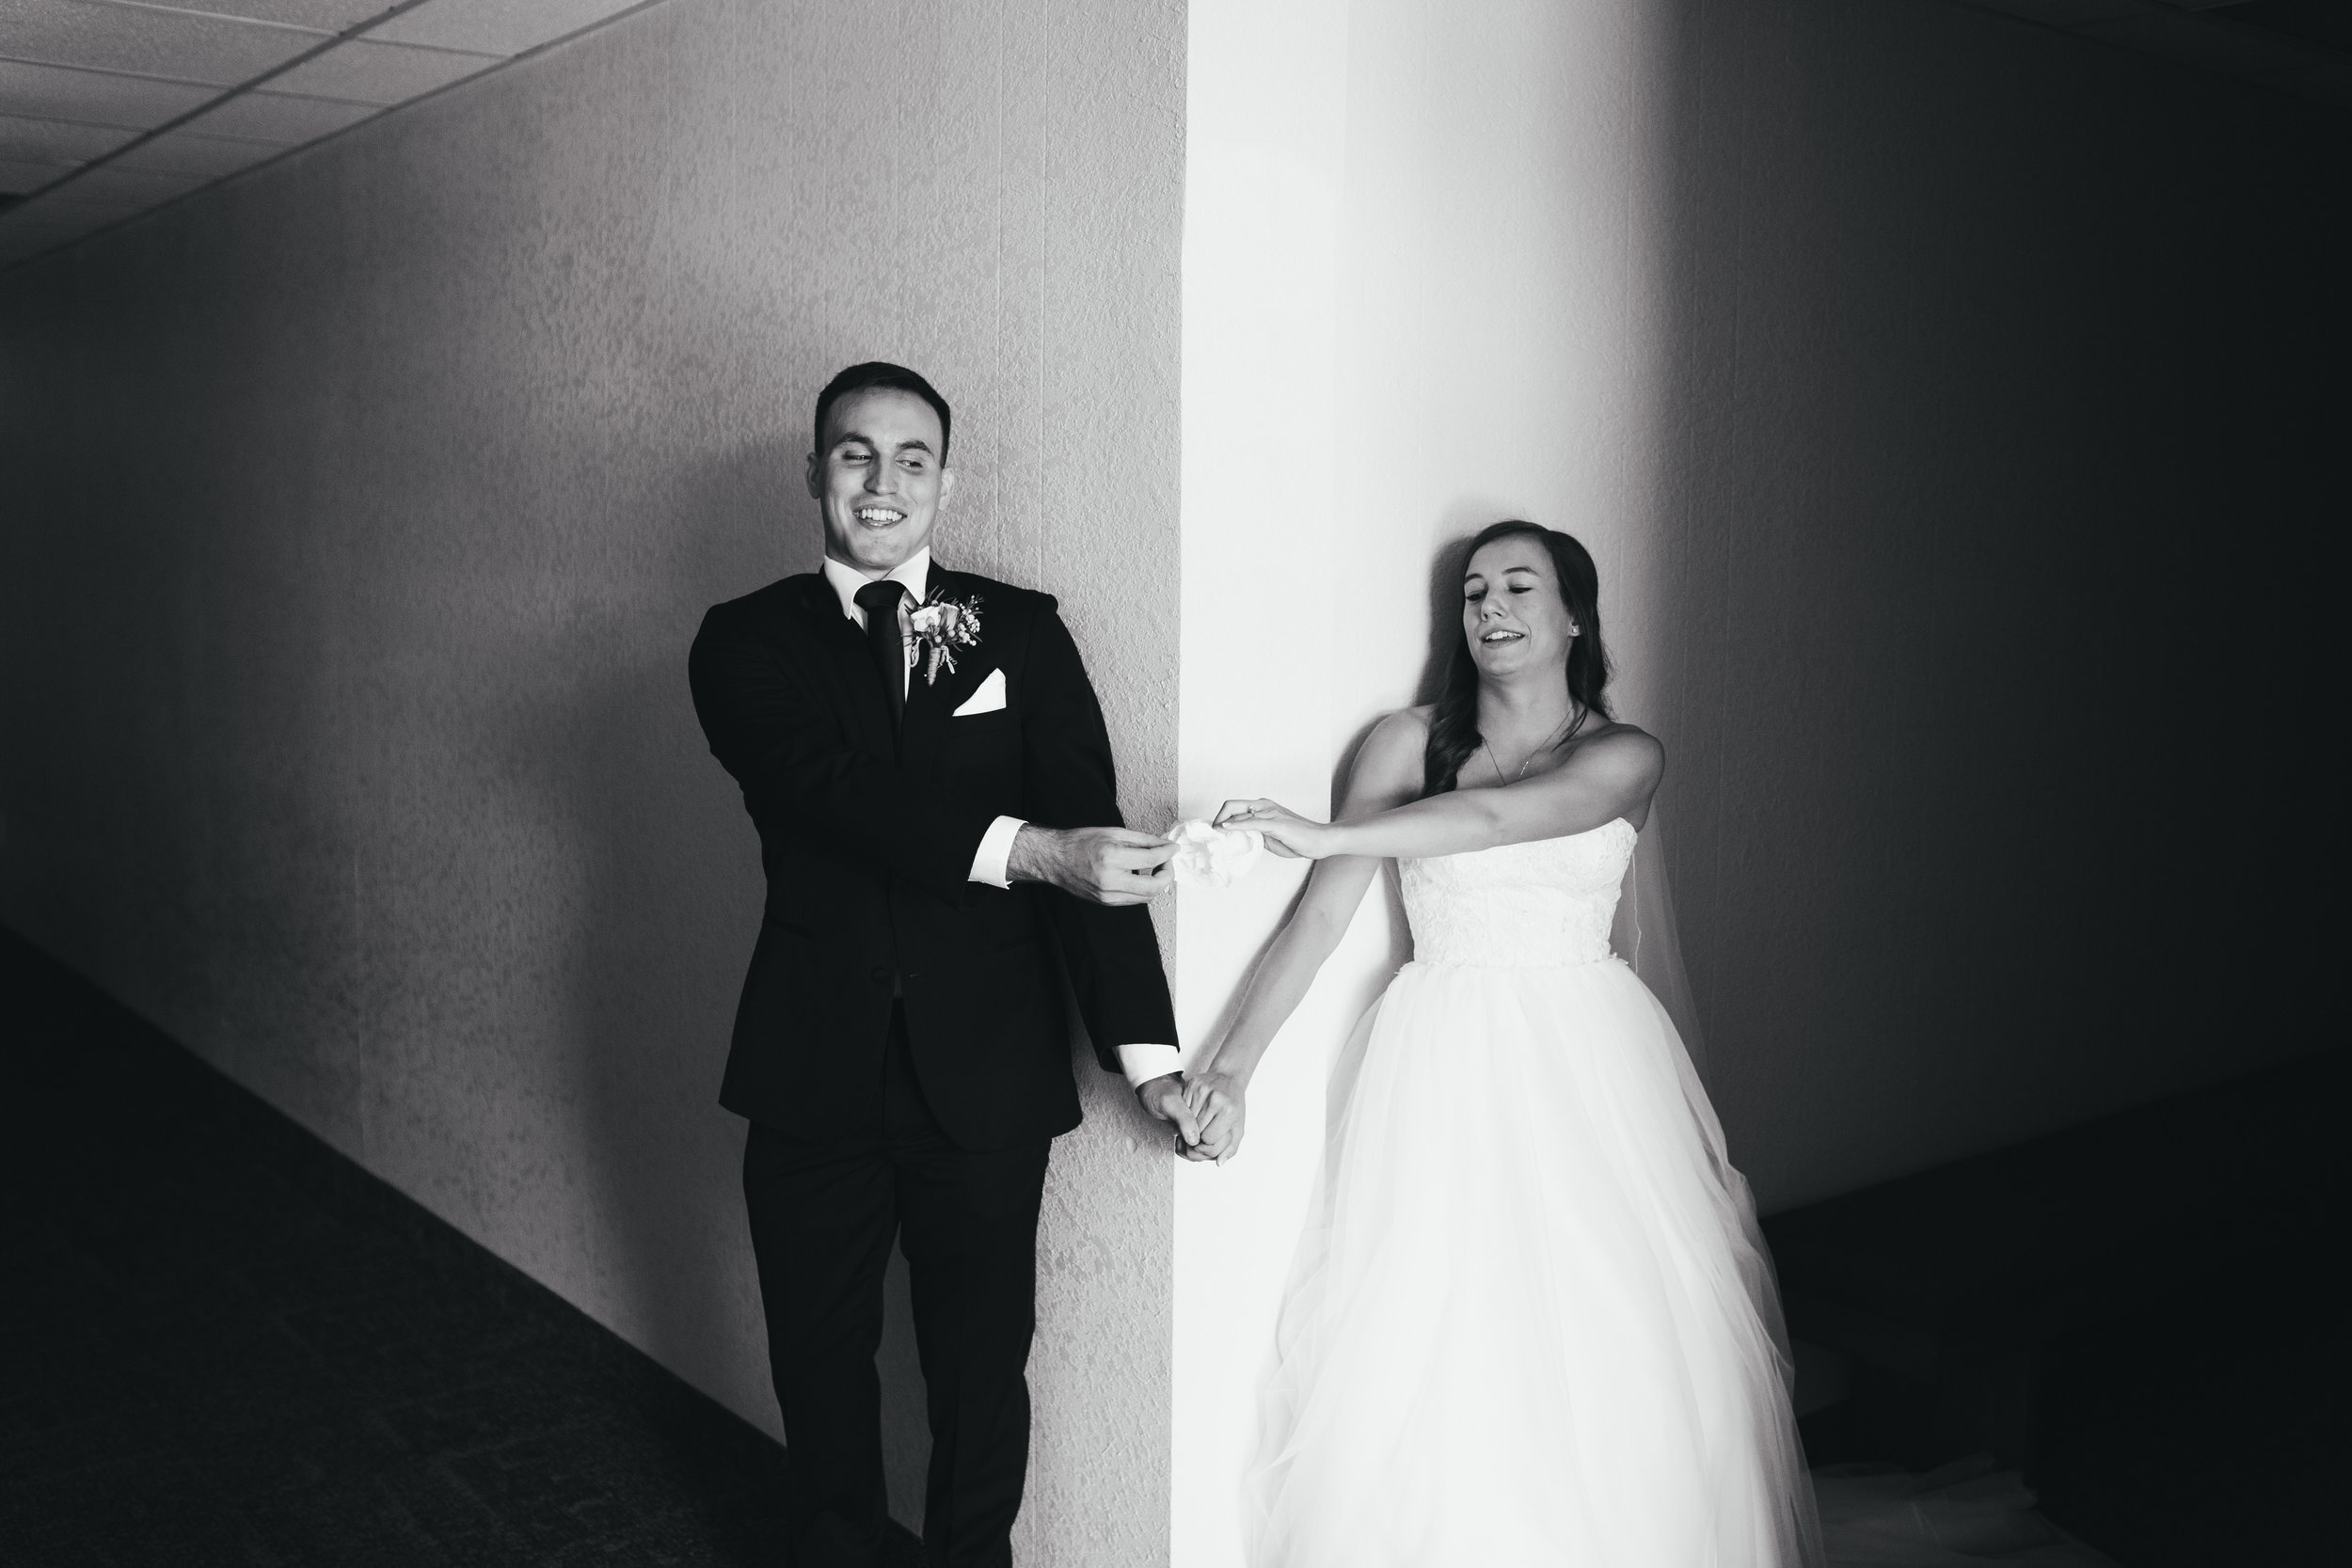 Alex & Heather - Pre Ceremony - Jake & Katie Photography_029.jpg